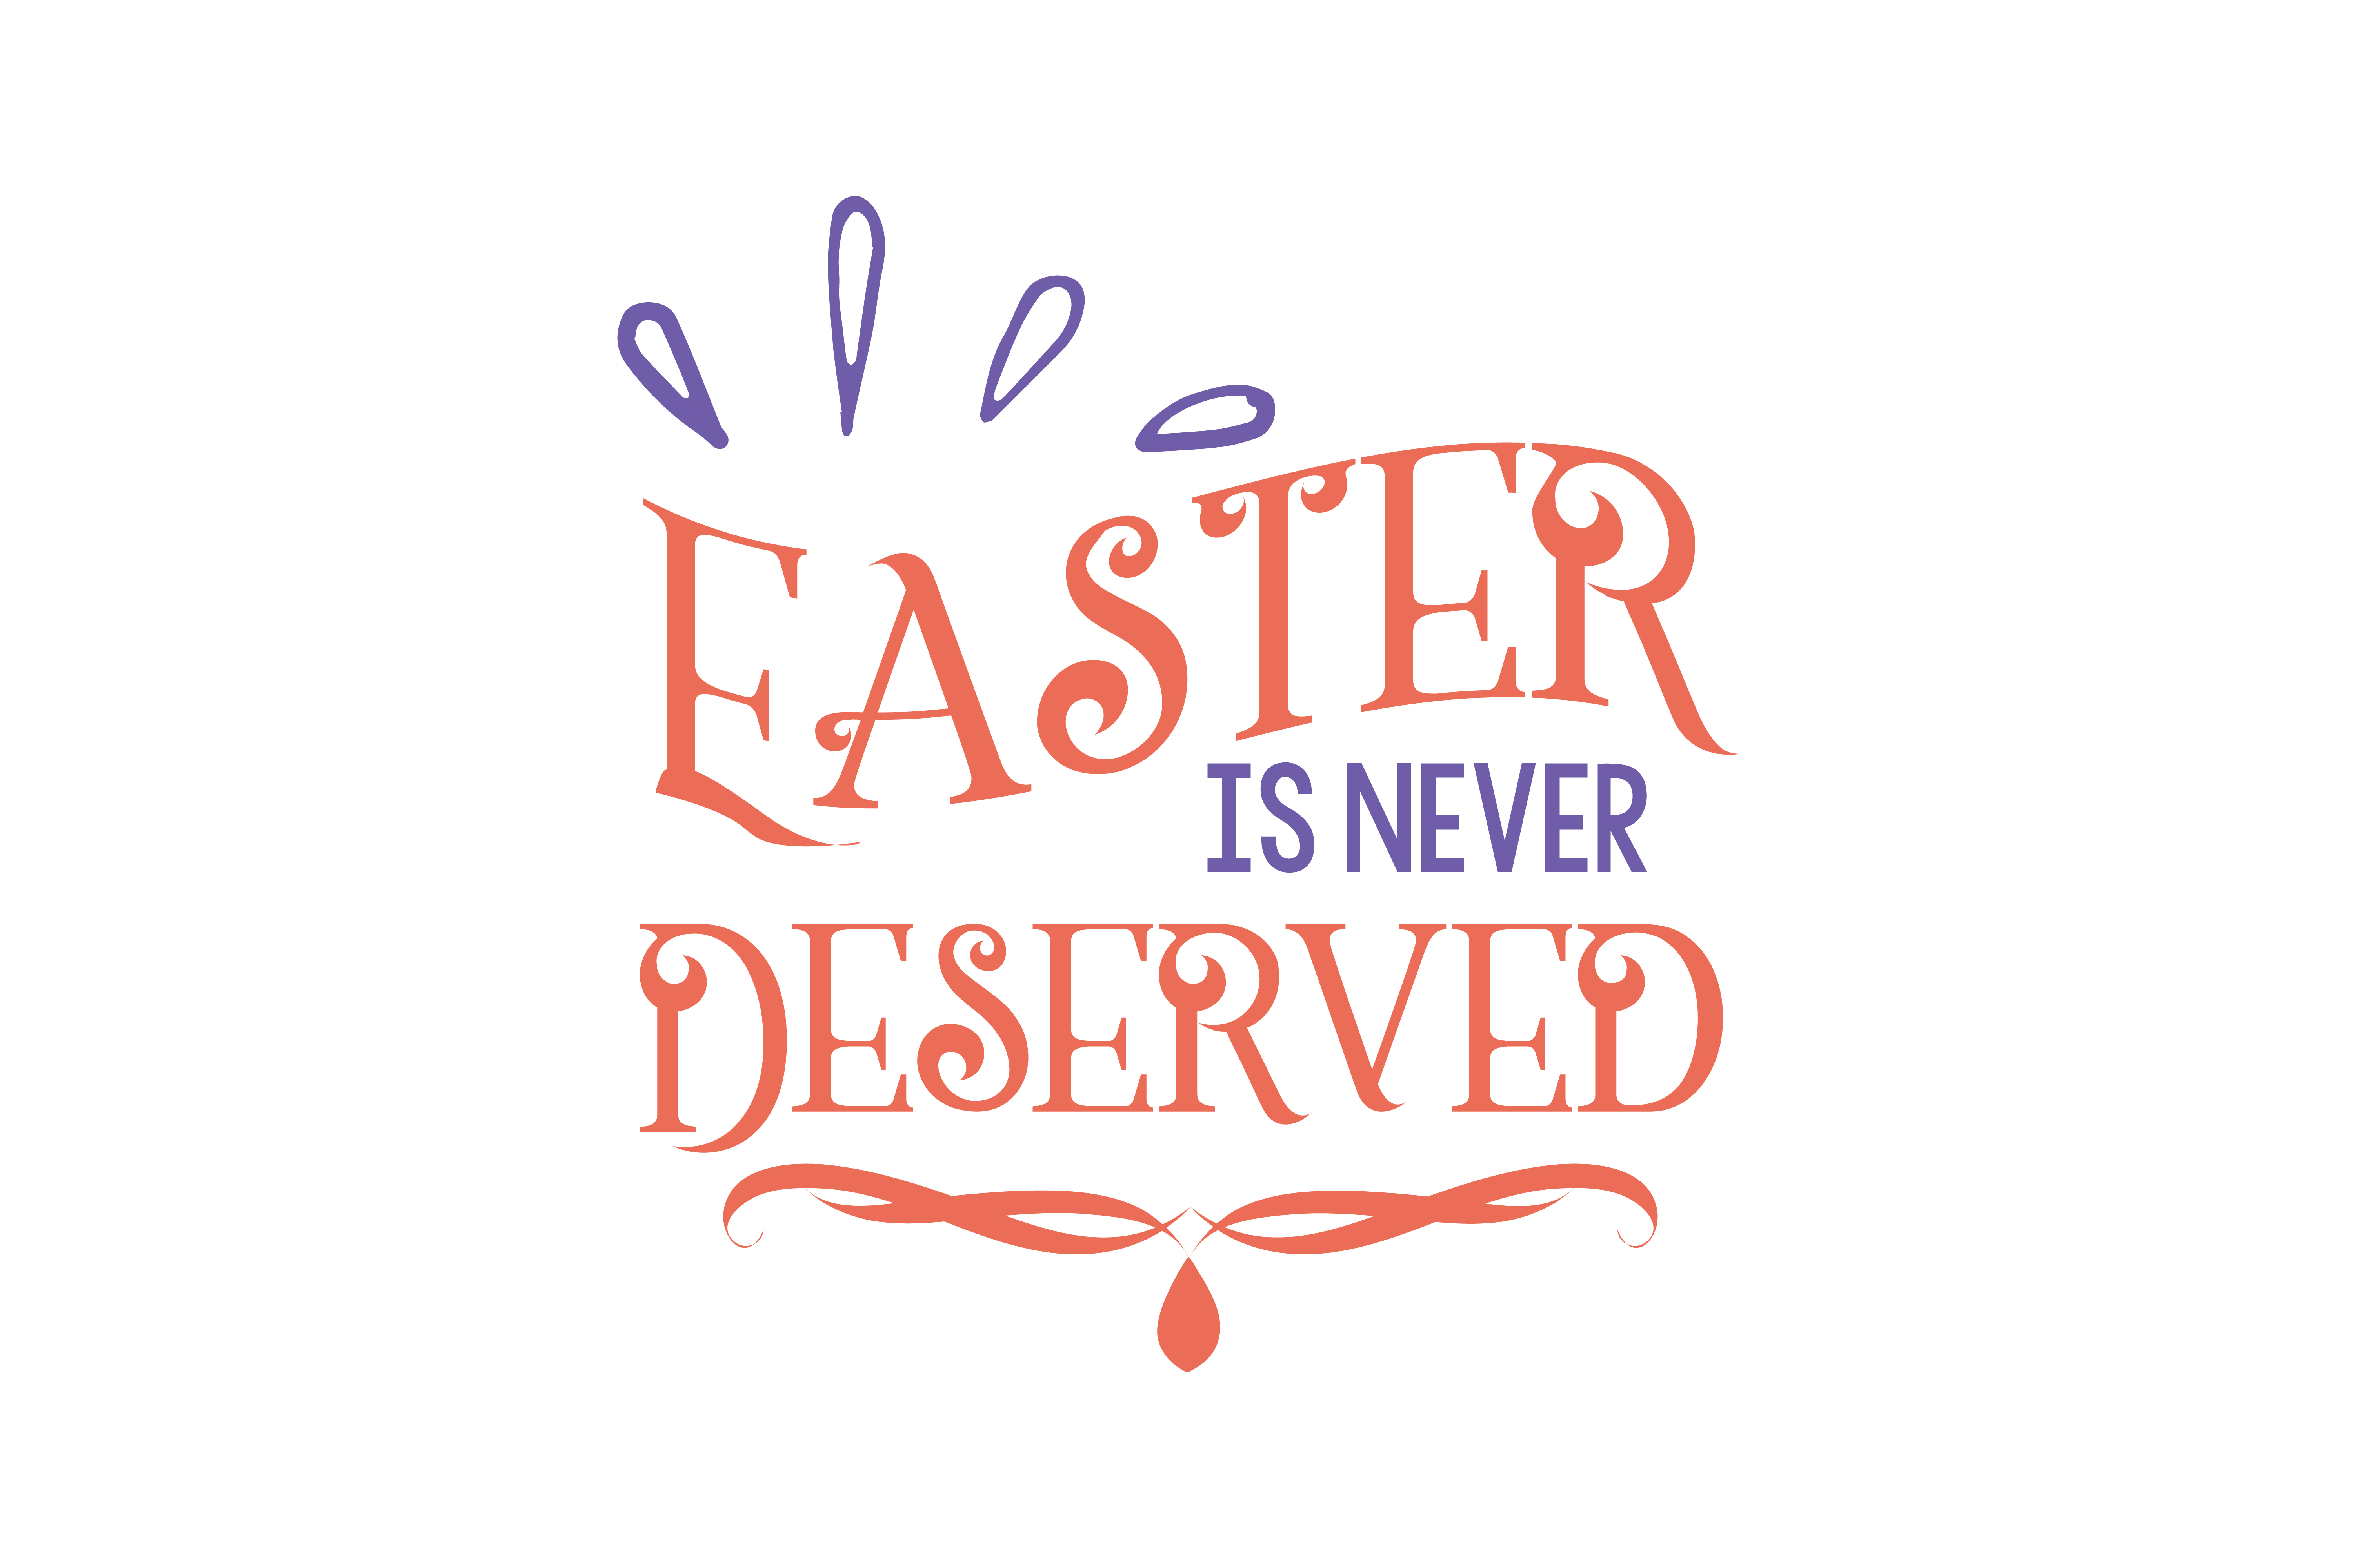 Download Free Easter Is Never Deserved Quote Svg Cut Graphic By Thelucky for Cricut Explore, Silhouette and other cutting machines.